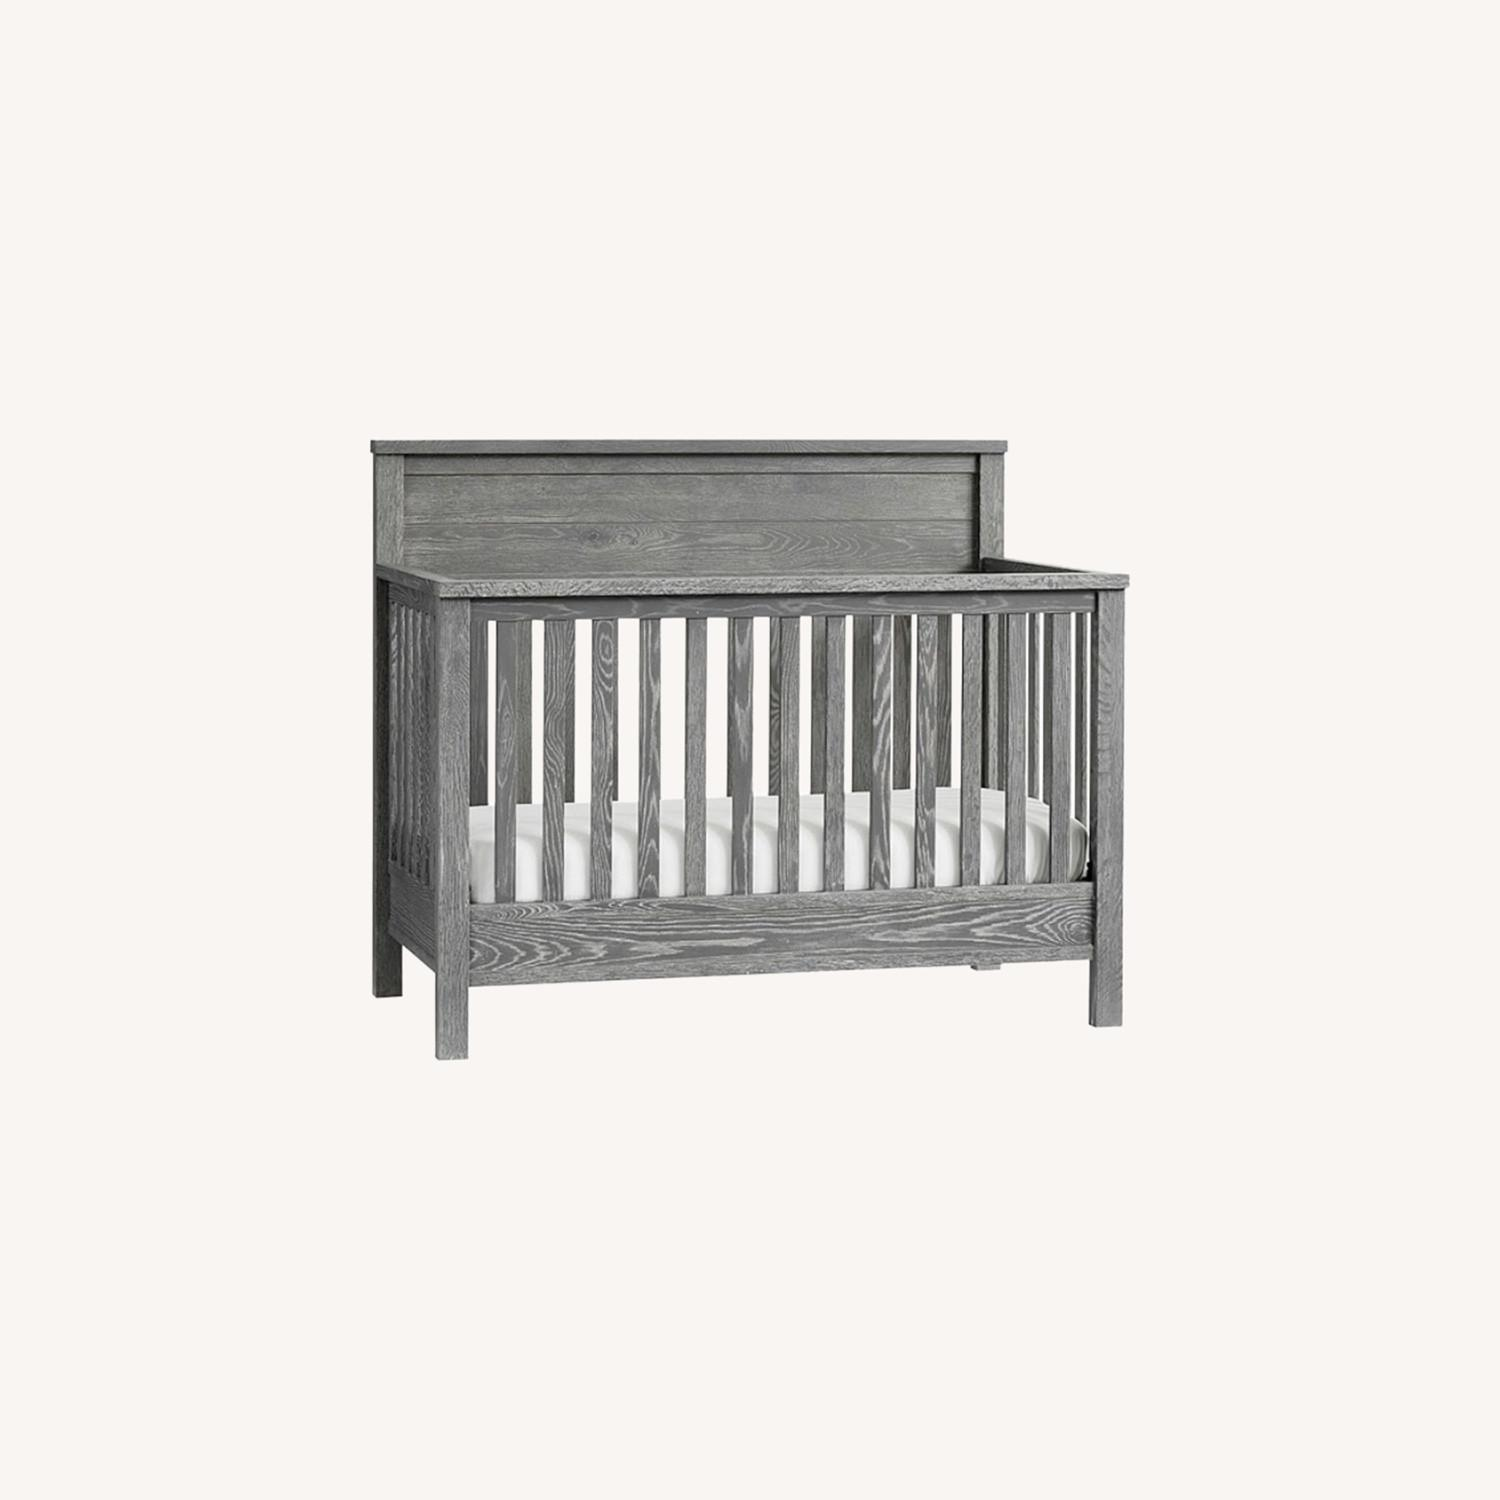 Pottery Barn Charlie Crib, Toddler Bed, Full Bed - image-0